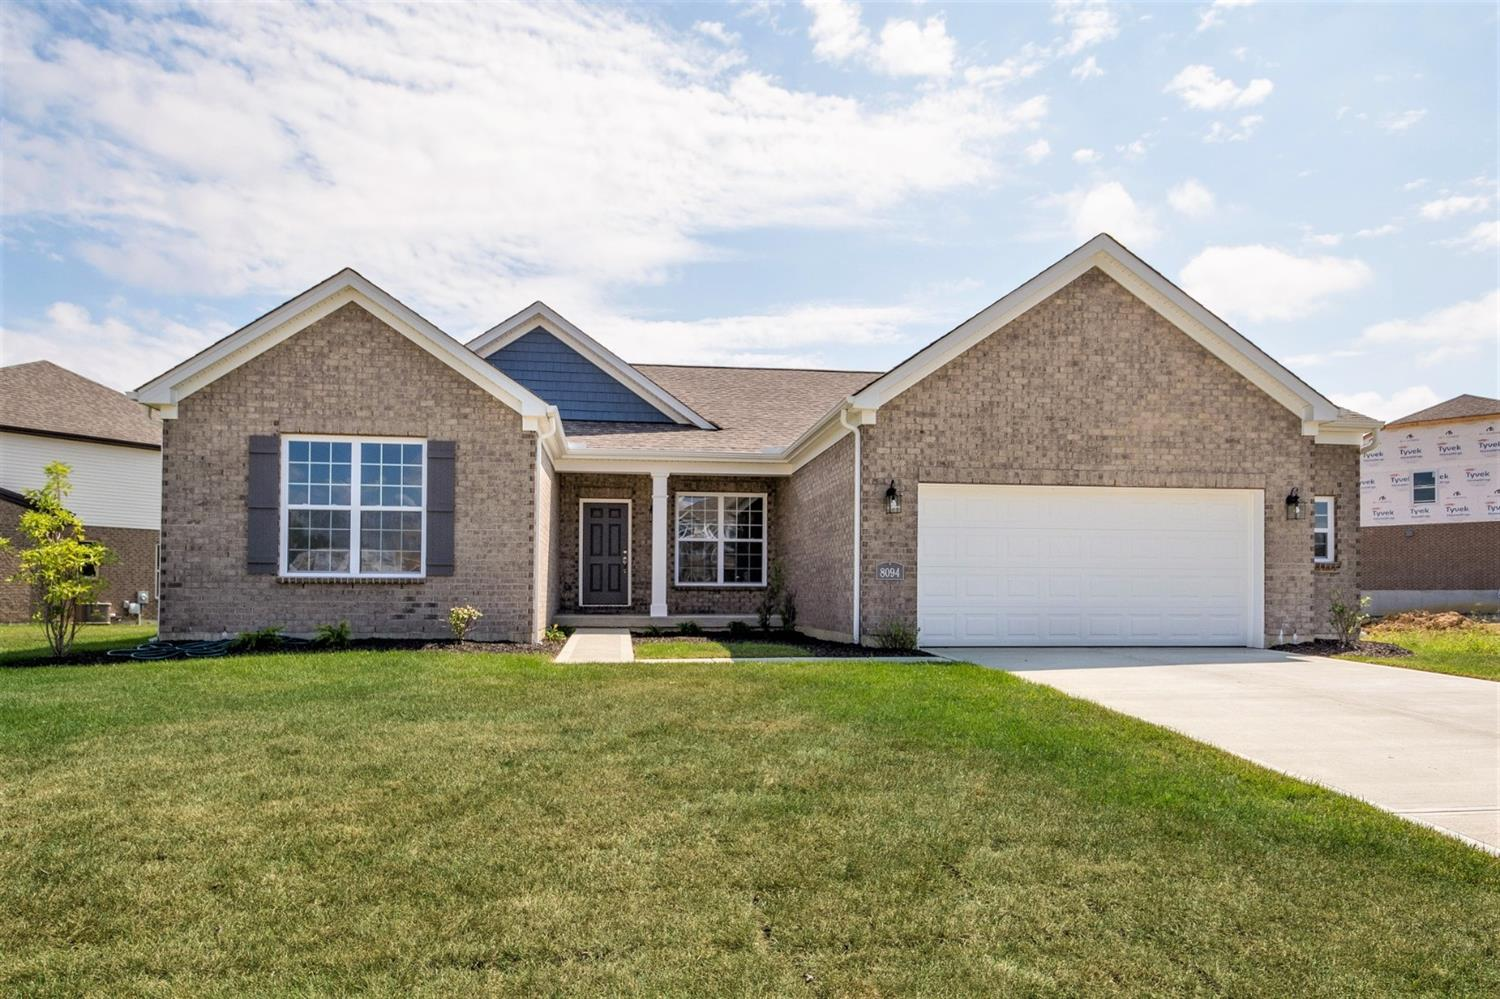 Photo 1 for 8094 Taffy Dr #44 West Chester - East, OH 45069